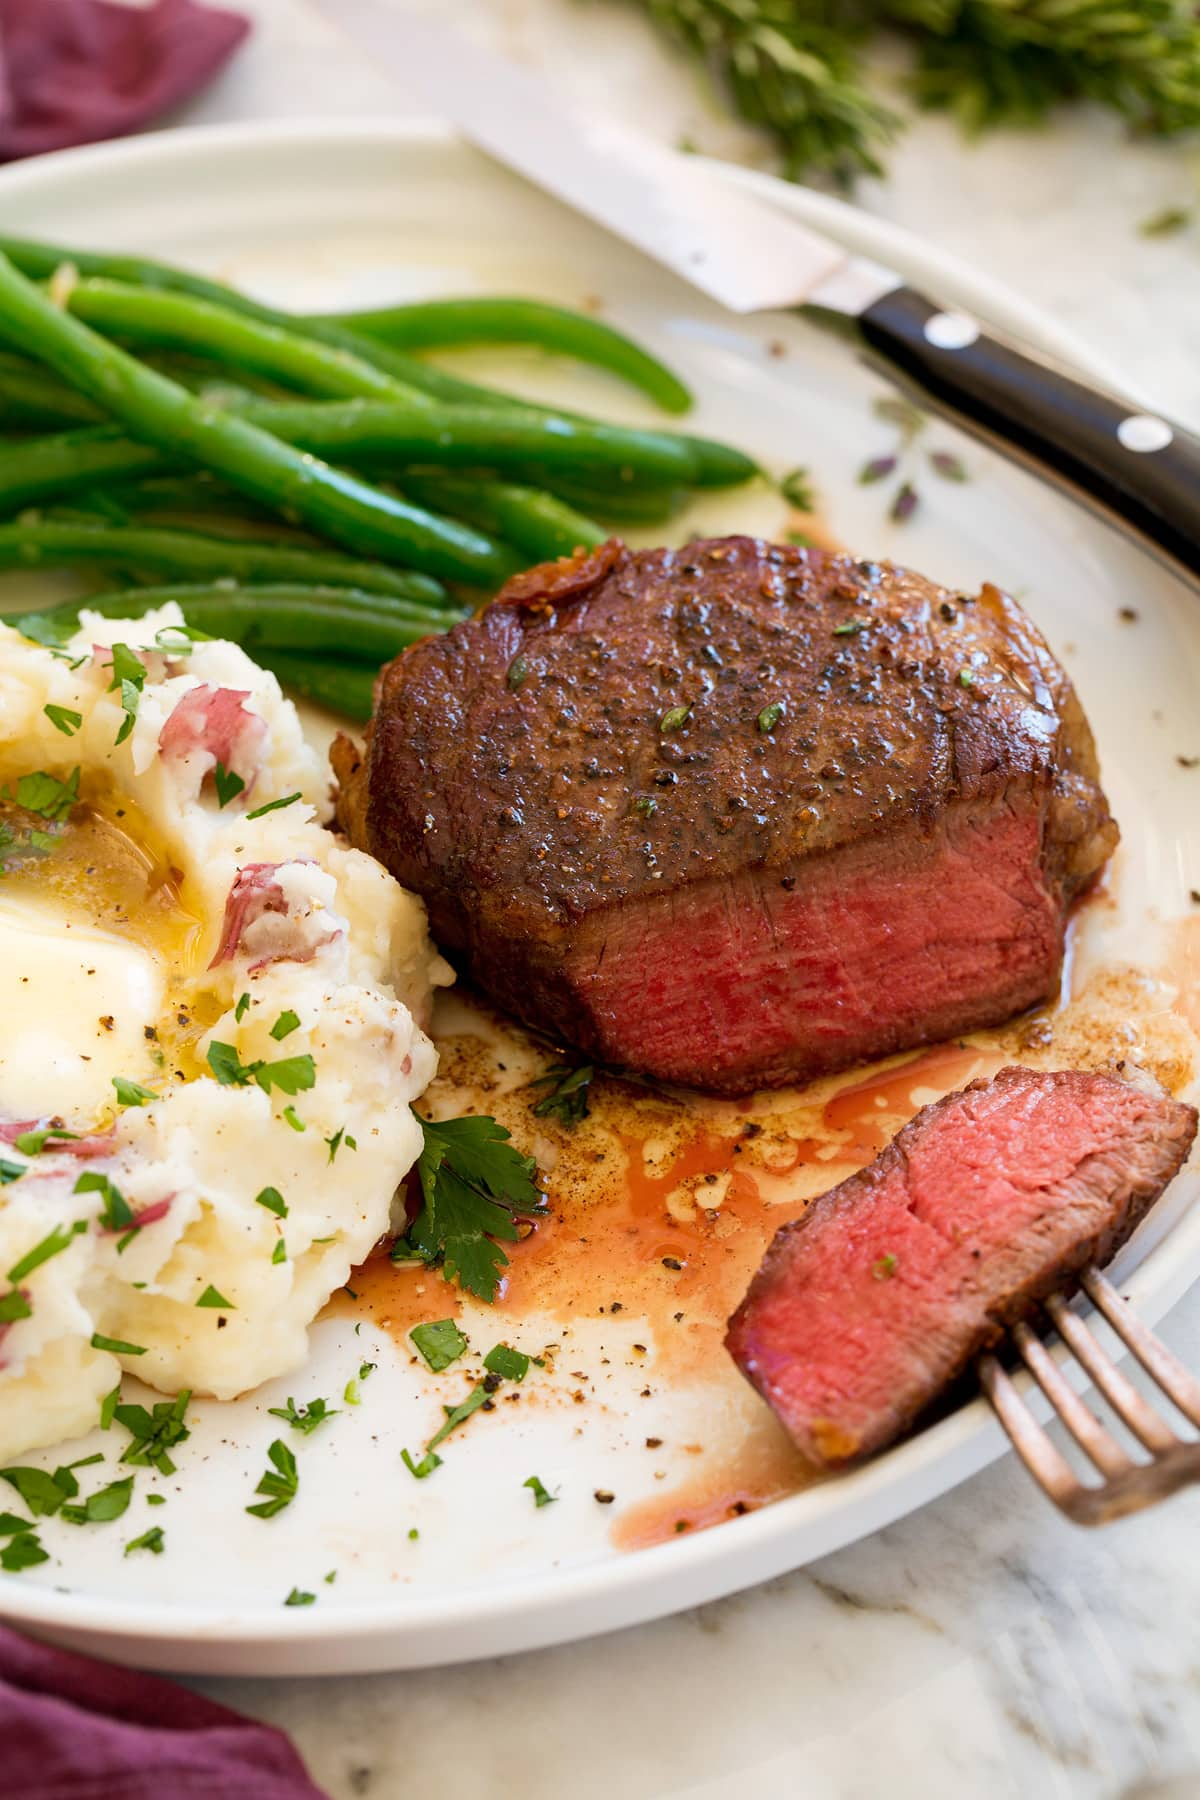 Filet Mignon shown on a serving plate with a side of mashed potatoes and steamed green beans.